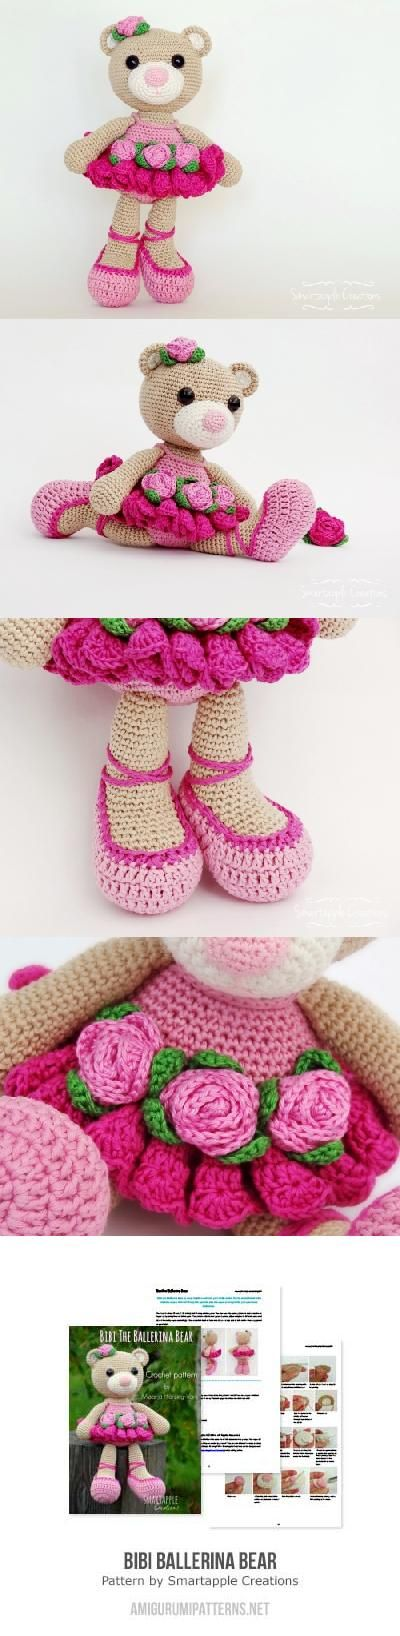 Crochet Ballerina Bear Free Pattern : Bibi the Ballerina Bear amigurumi pattern by Smartapple ...